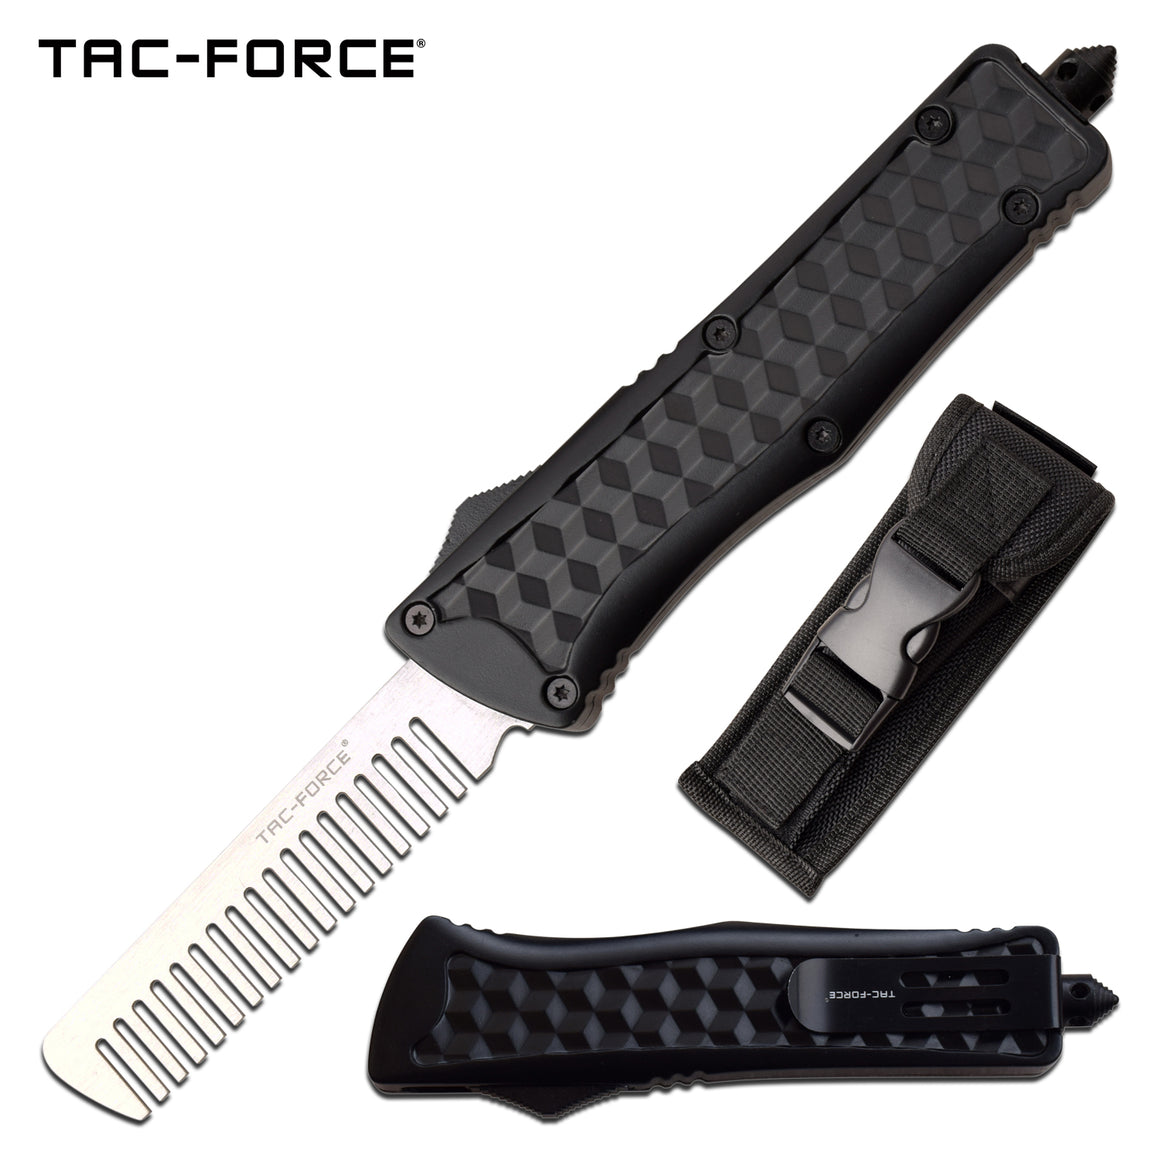 Tac-Force TF-CB002 Folding Knife